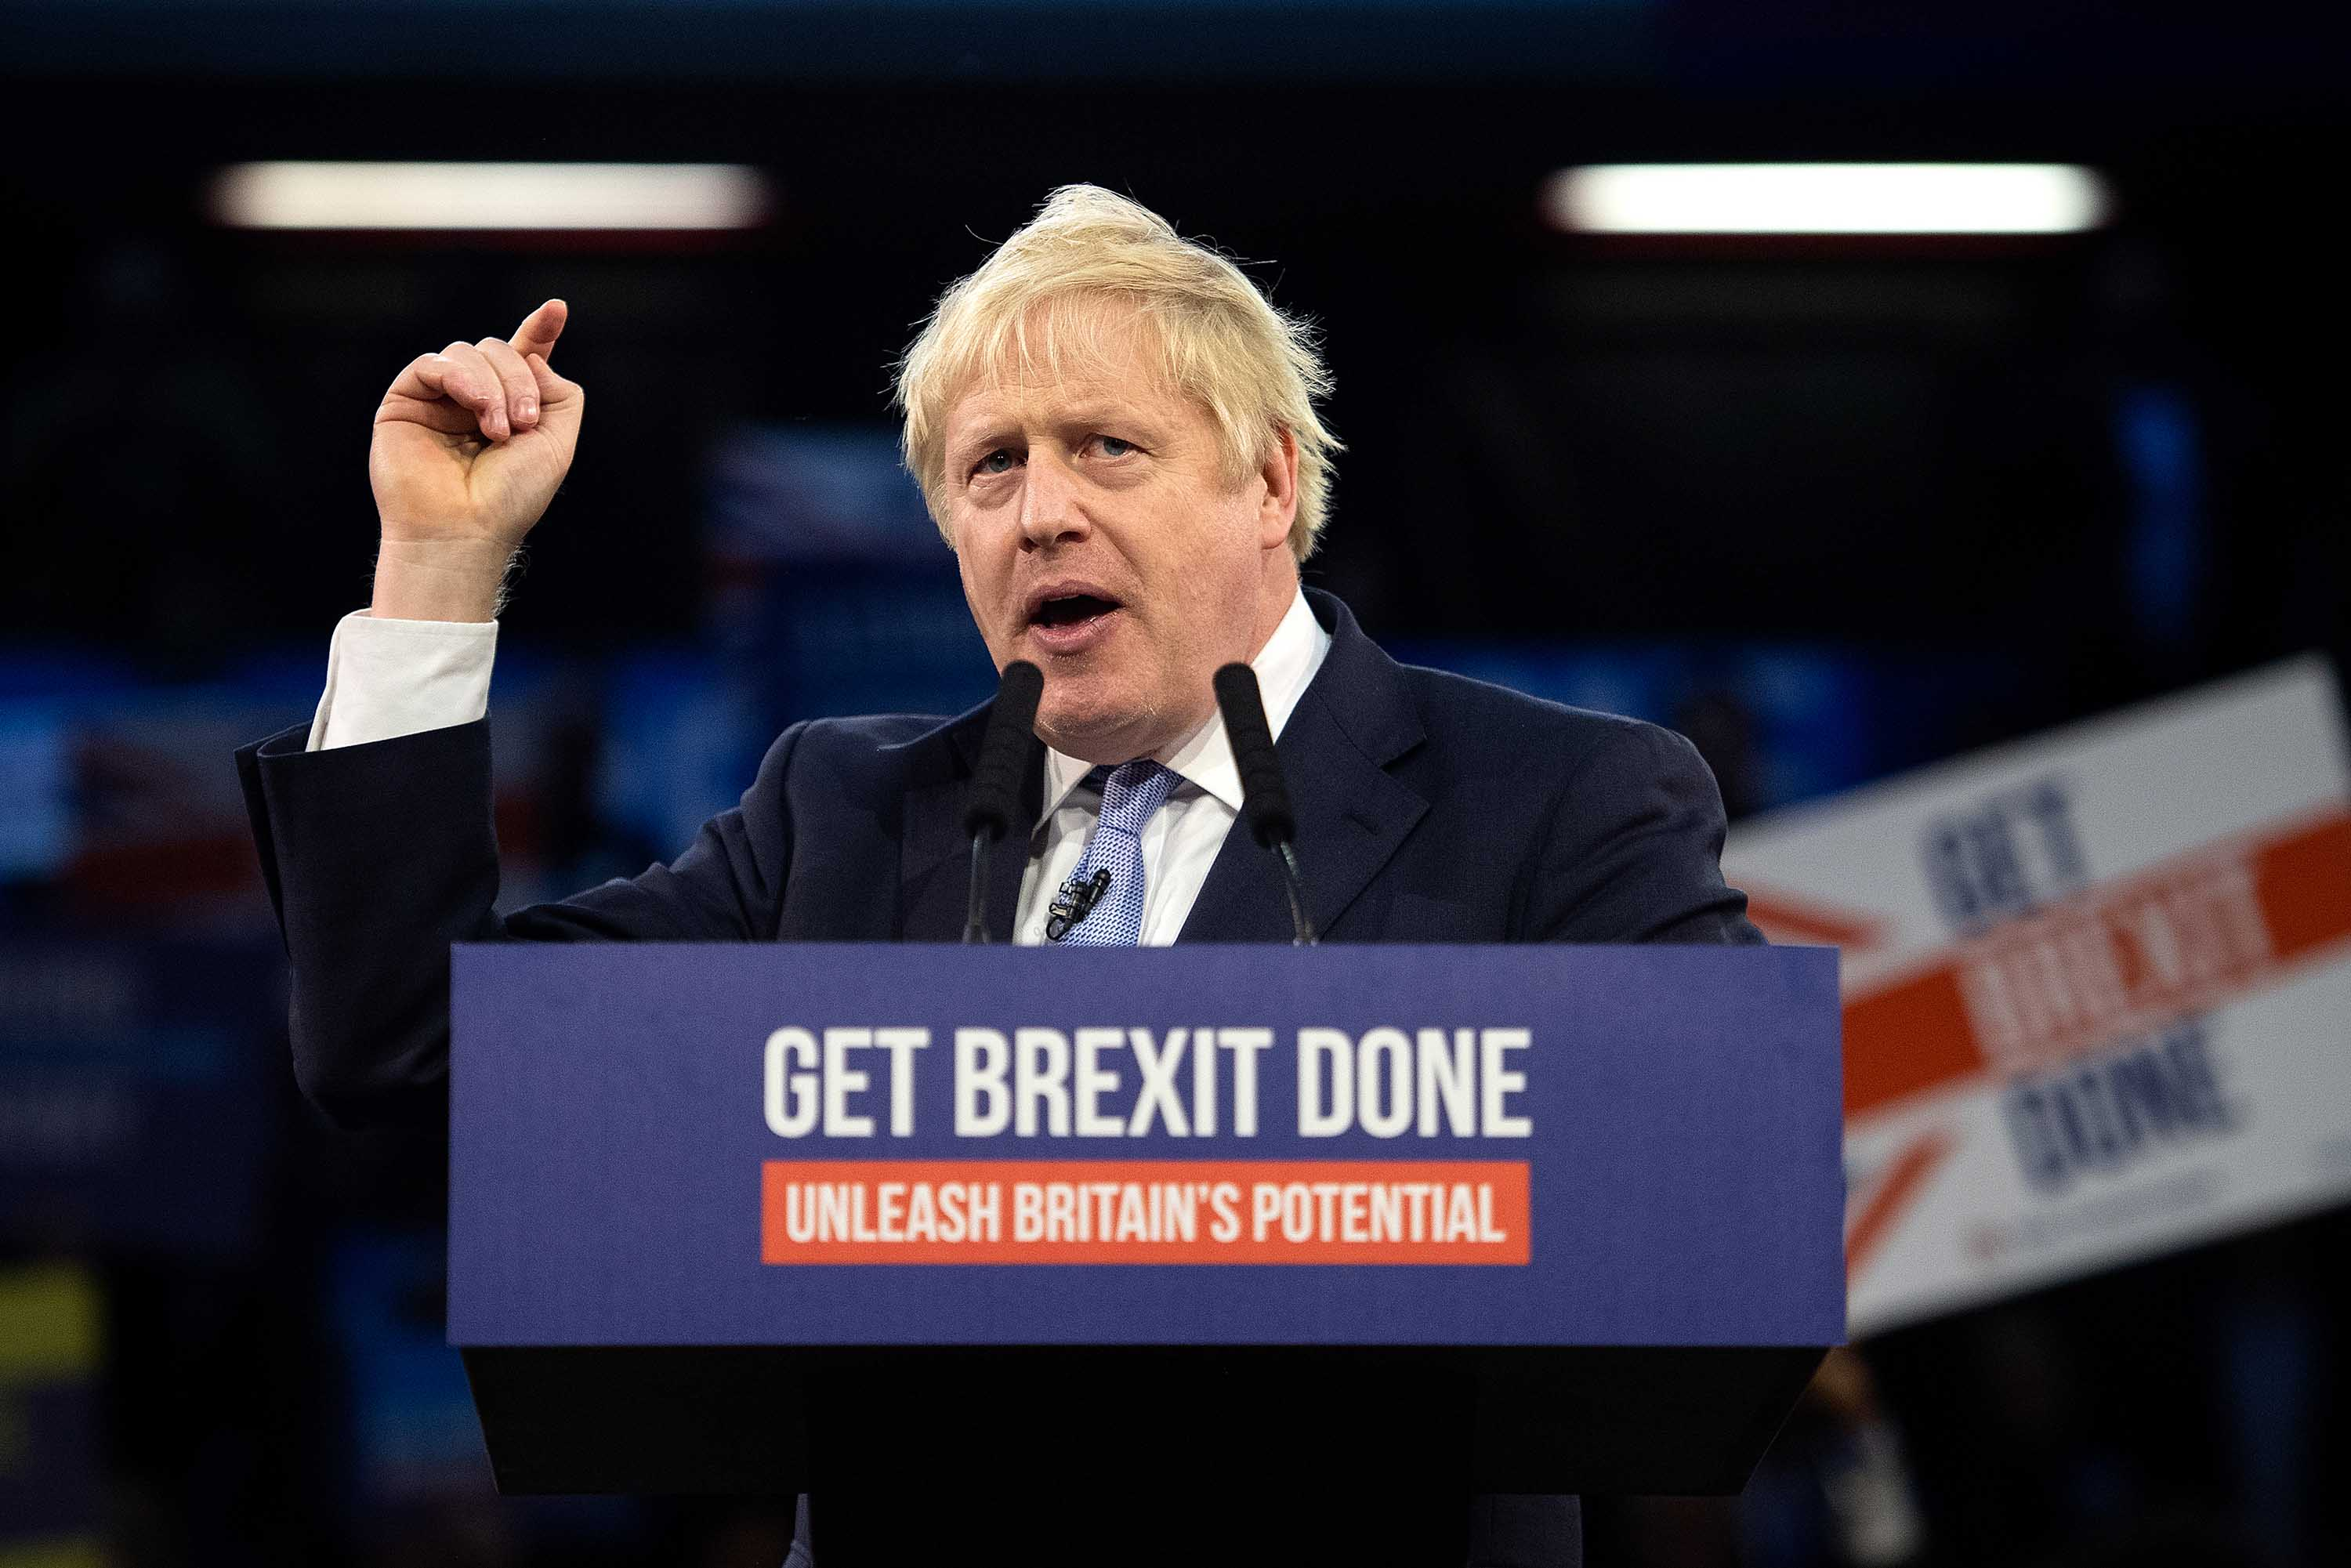 Prime Minister Boris Johnson speaks to supporters at the Copper Box Arena in London on Wednesday. Photo: Leon Neal/Getty Images